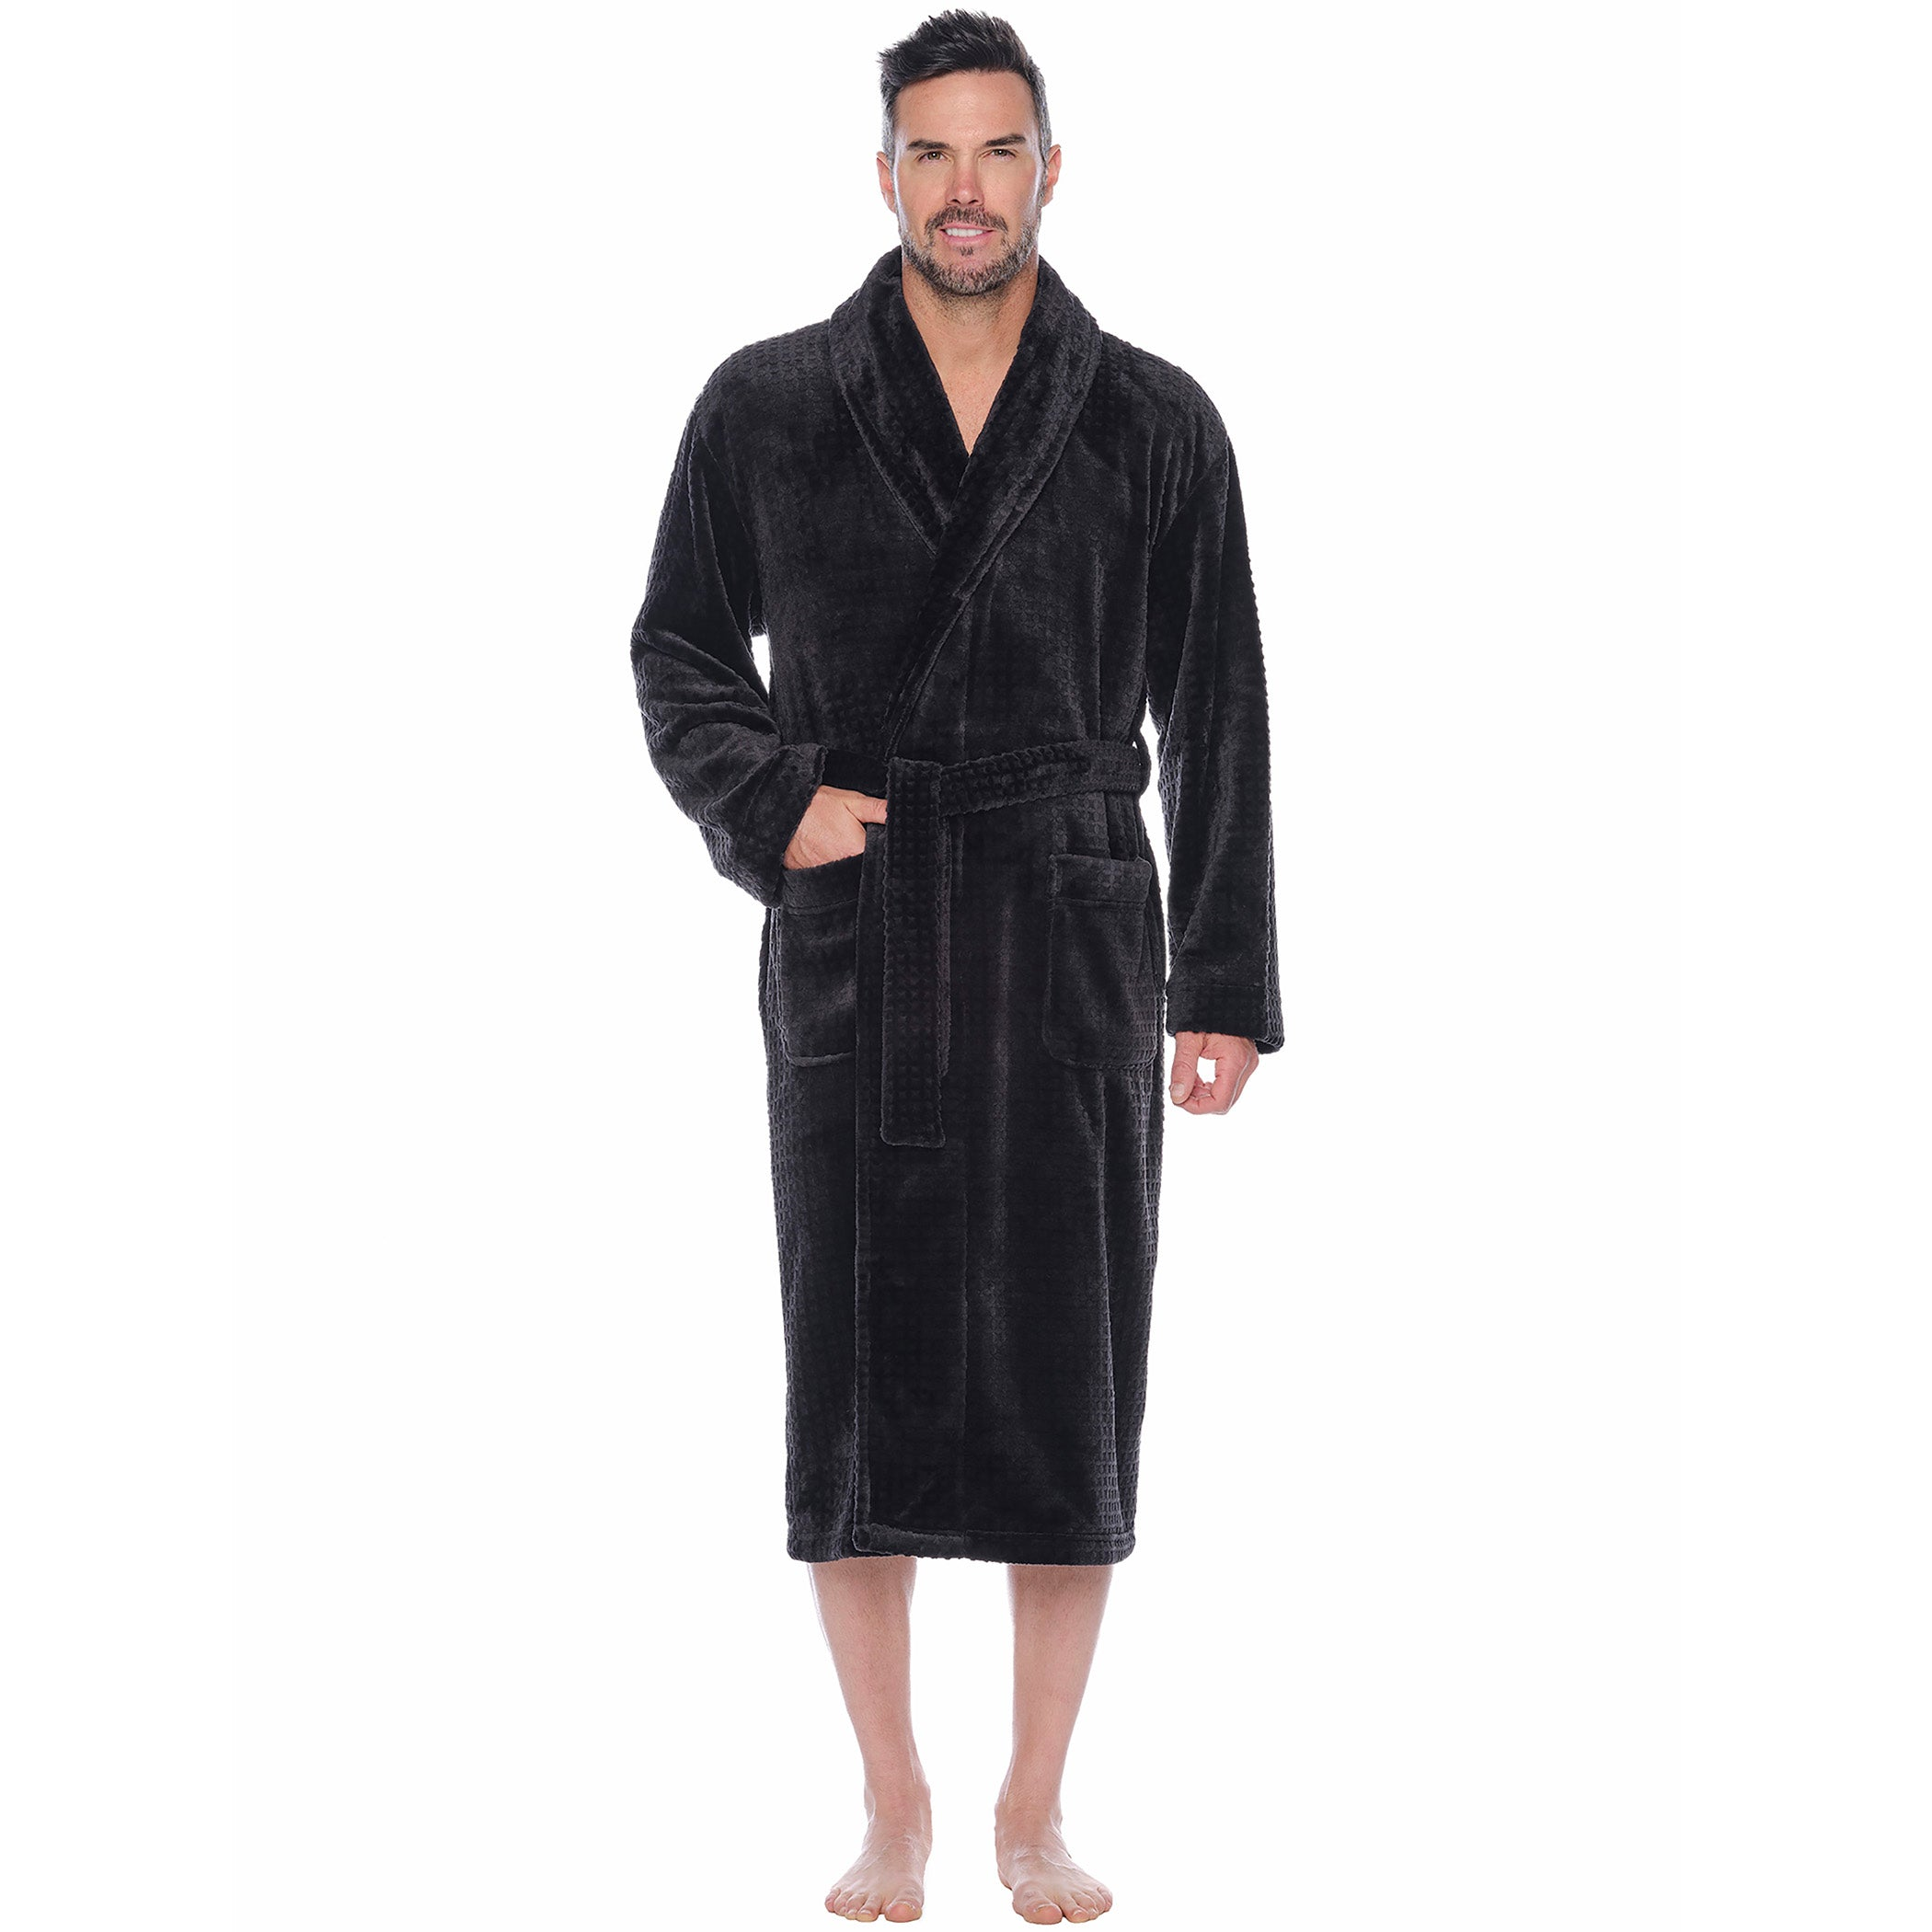 Snowball Solid Plush Fleece Shawl Robe